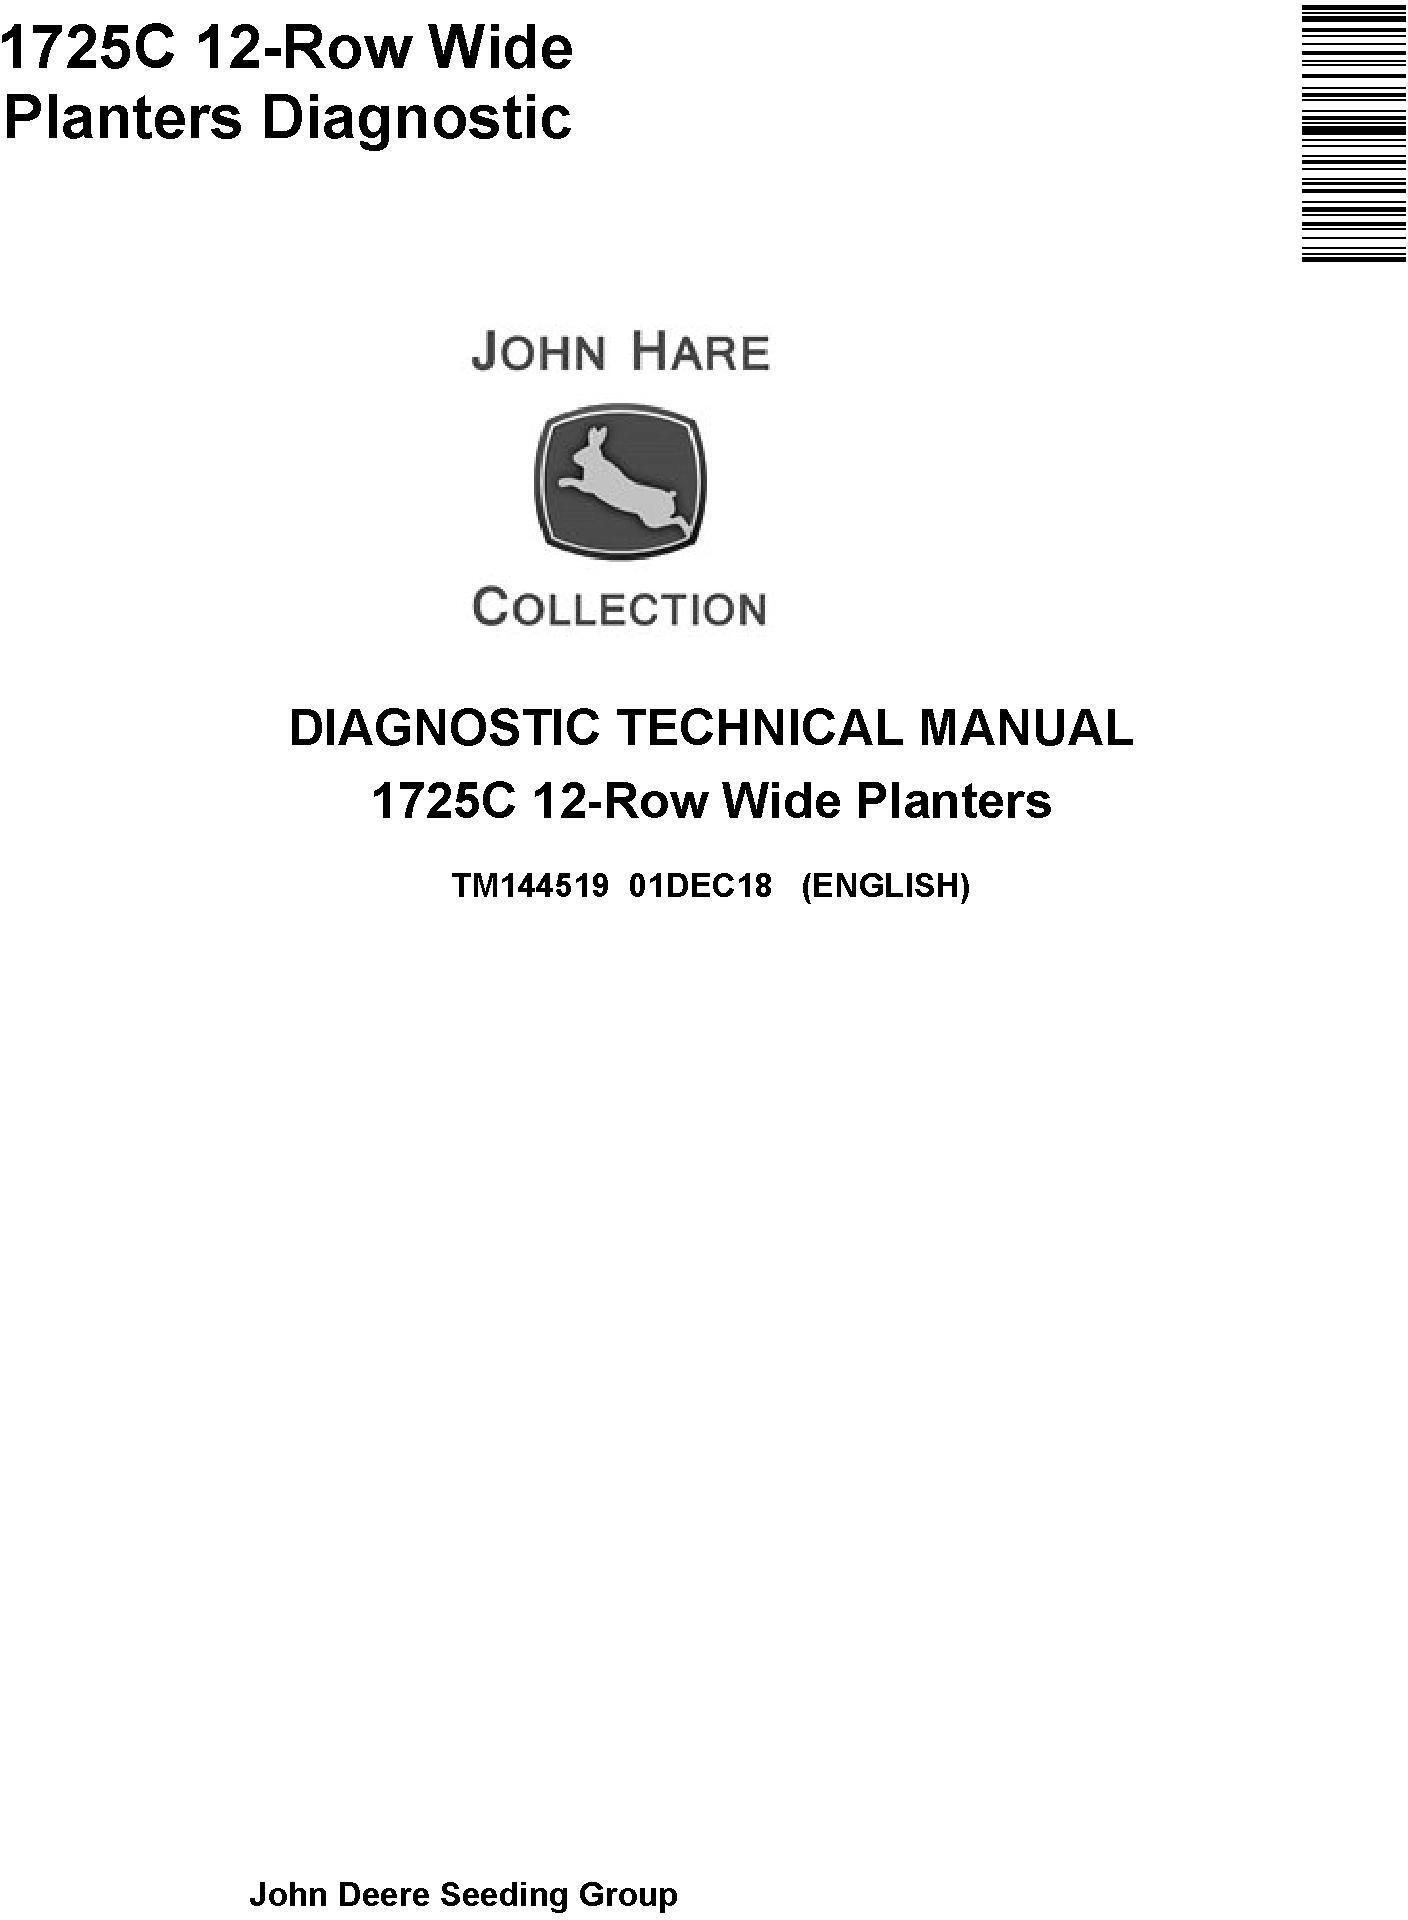 John Deere 1725C 12-Row Wide Planters Diagnostic Technical Service Manual (TM144519) - 19268